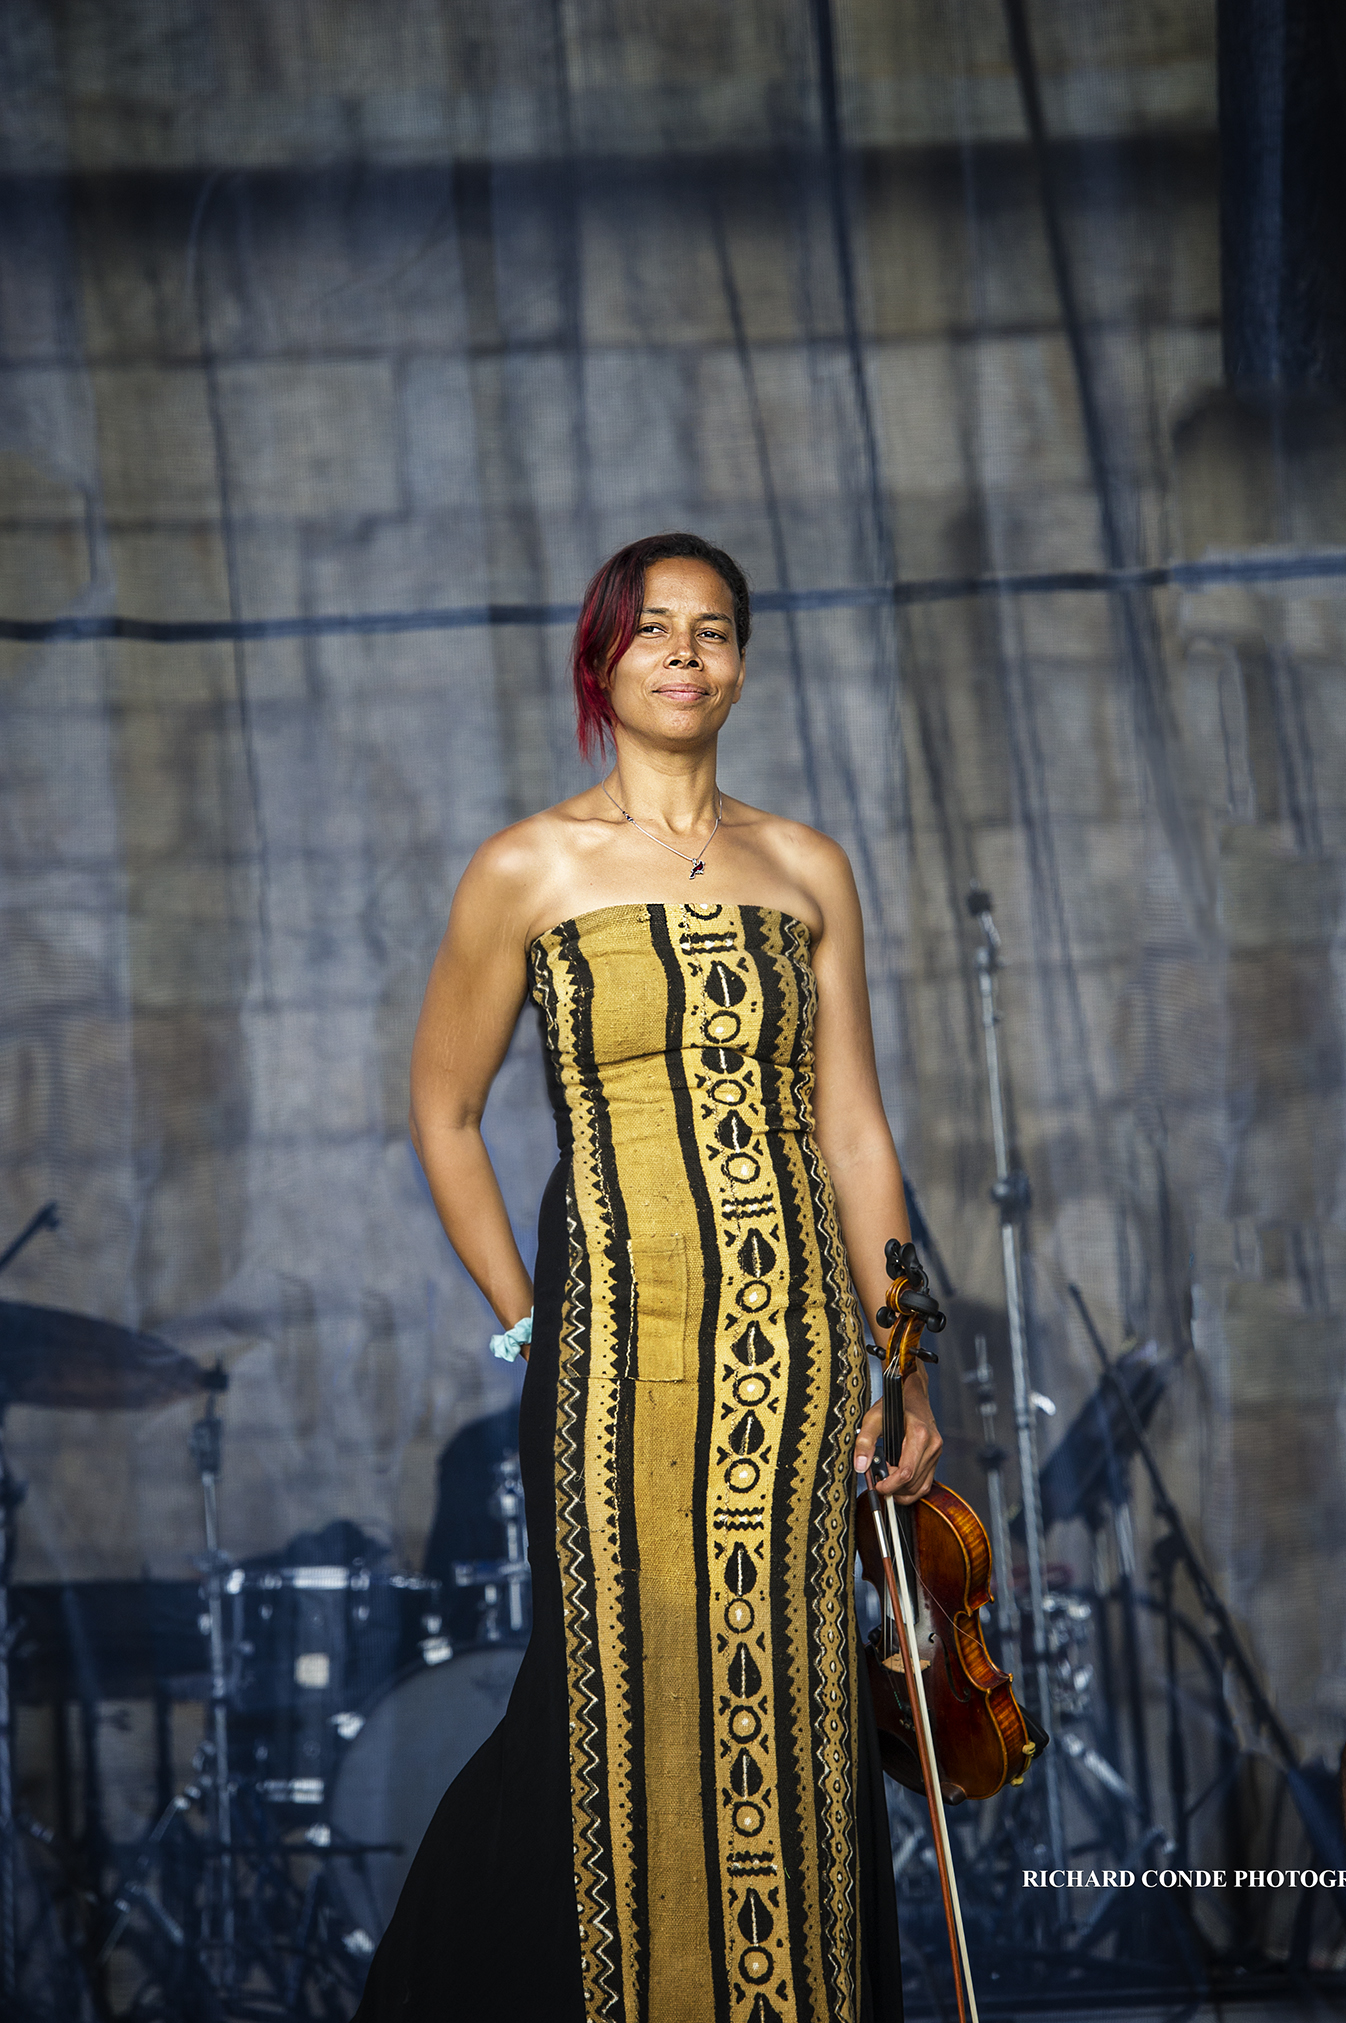 Rhiannon Giddens At The 2017 Newport Jazz Festival